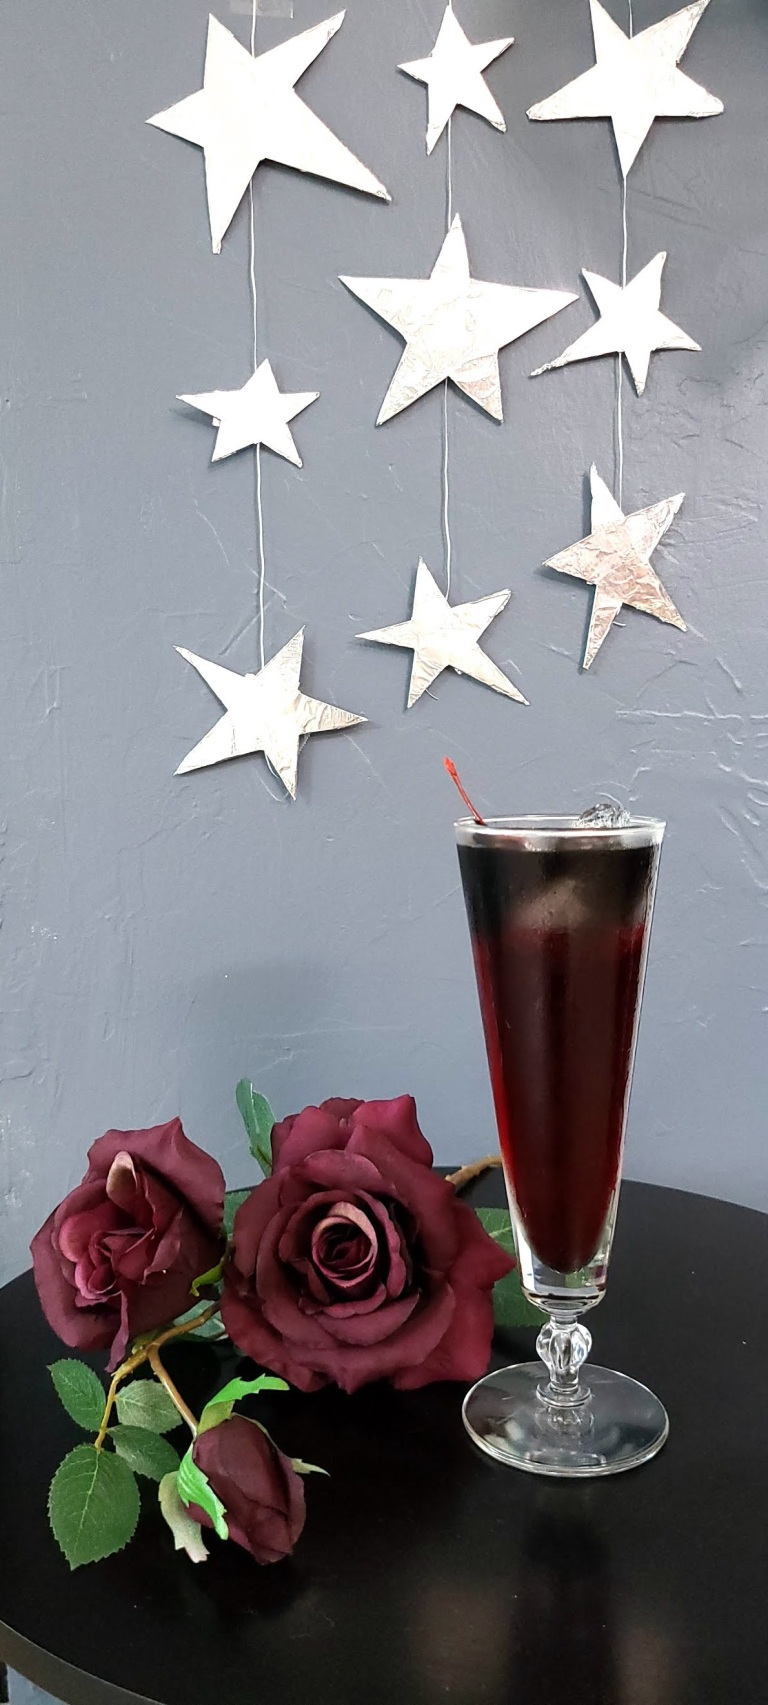 Shiny stars hang in the background. Red roses lay on black table next to glass. Glass has the Pig's Blood drink garnished with Cherry. The drink is red with black layered on top.